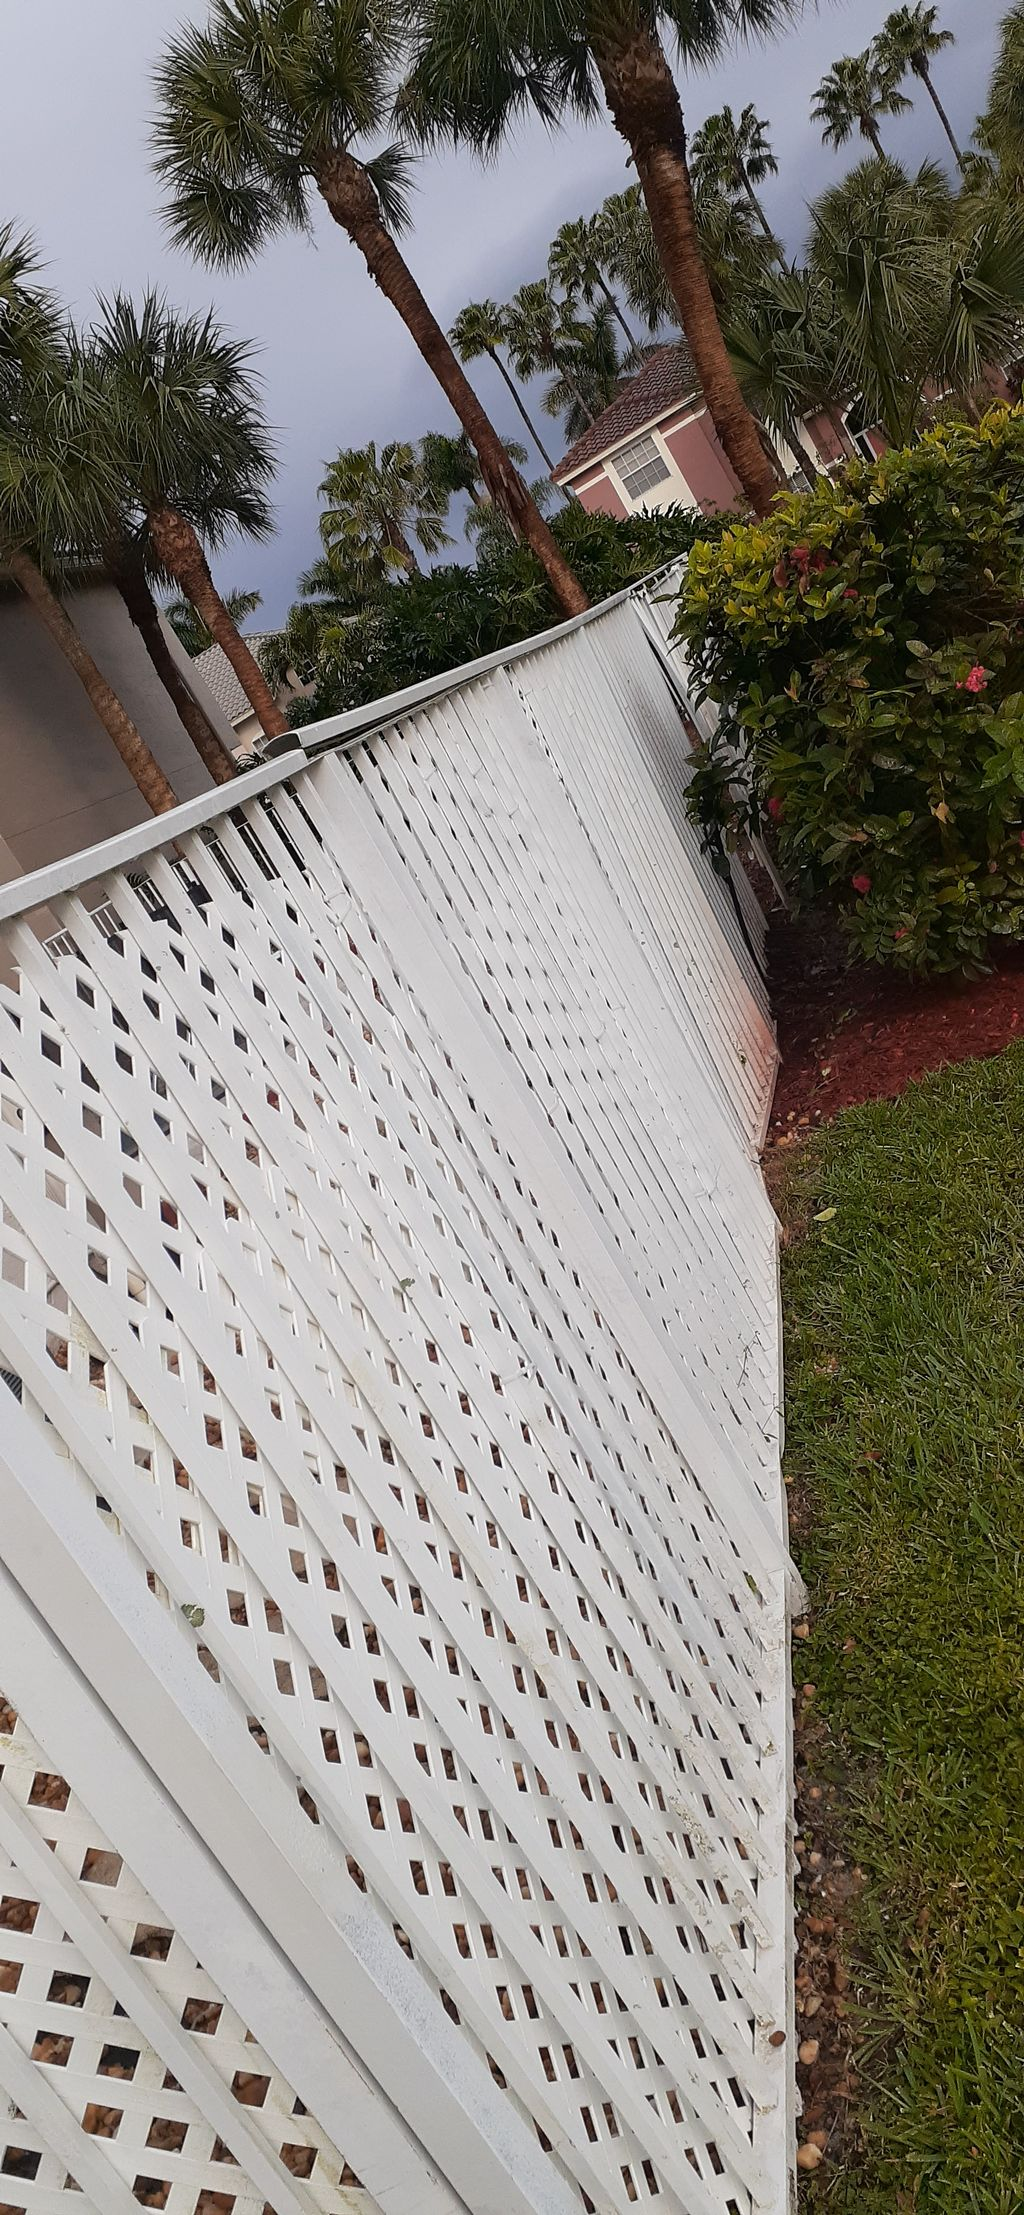 Removing old fence, applying new one